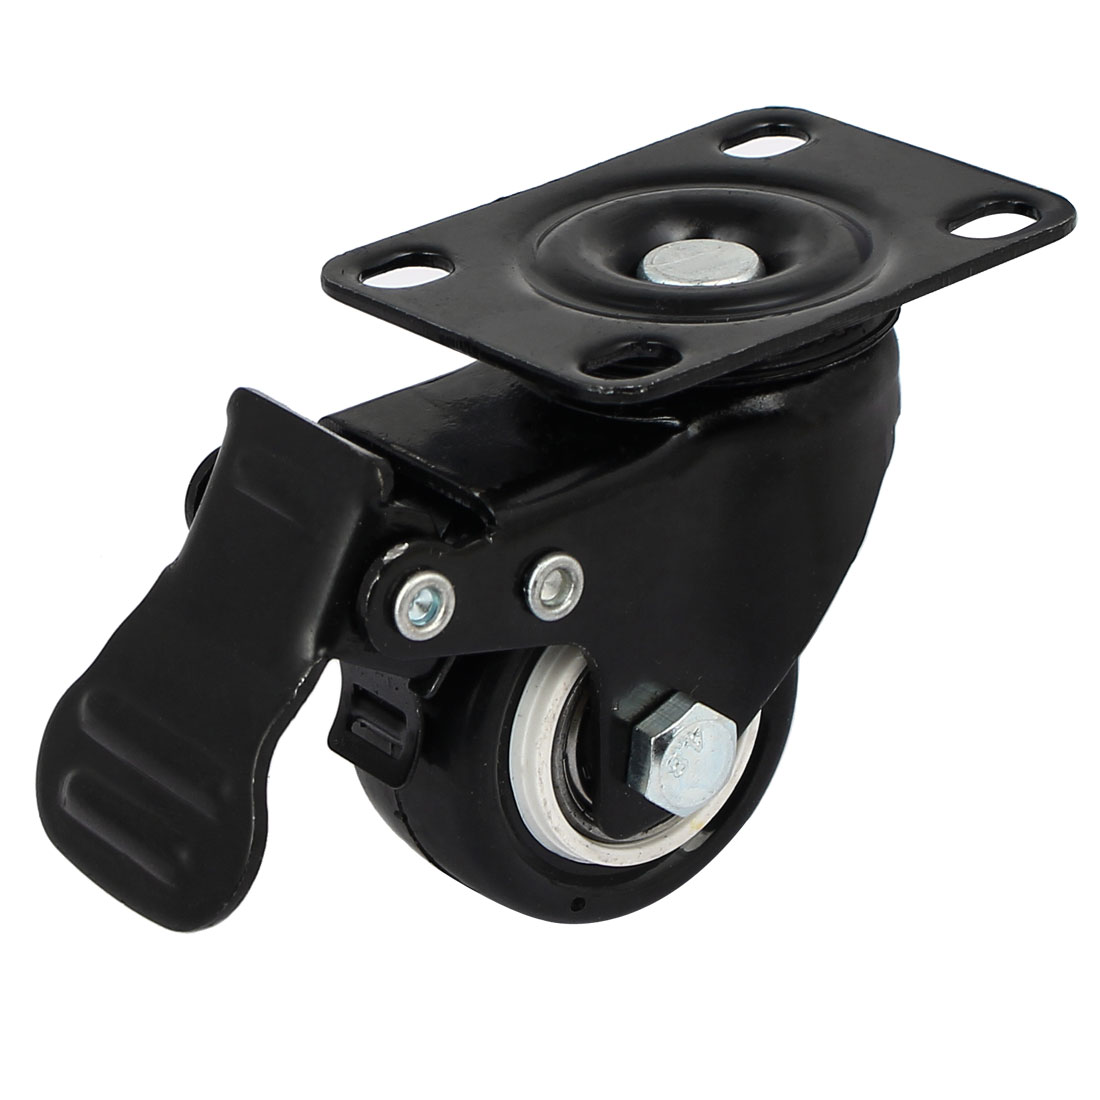 1.5'' Diameter Wheel Rotary Top Flat Plate Swivel Brake Caster Black